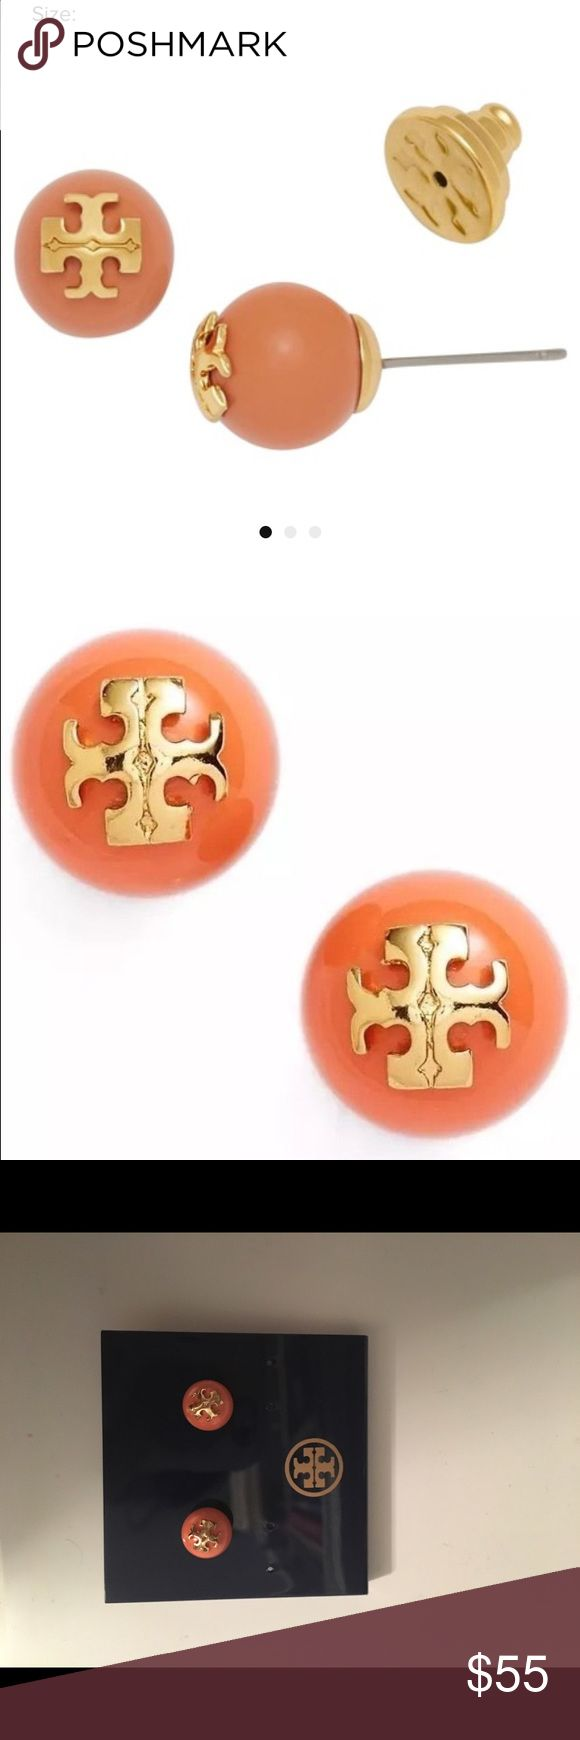 Authentic Tory butch studs Beautiful and brand new Tory Burch Jewelry Earrings